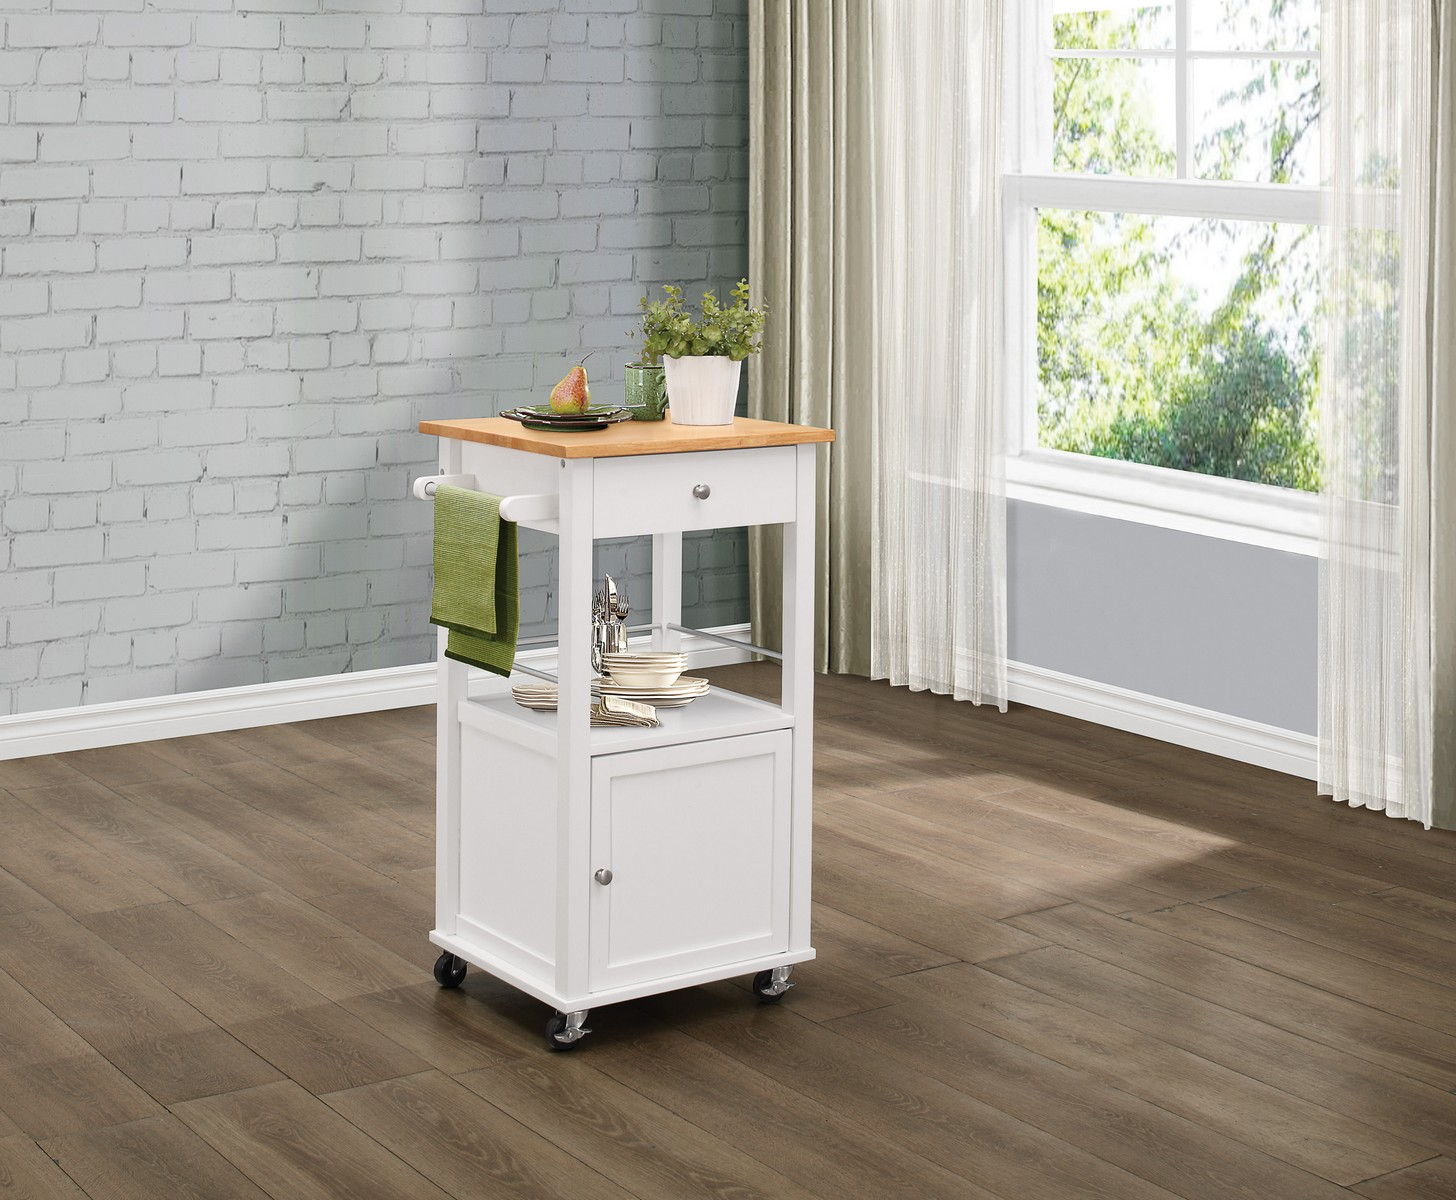 Homelegance Kady Kitchen Cart with Casters